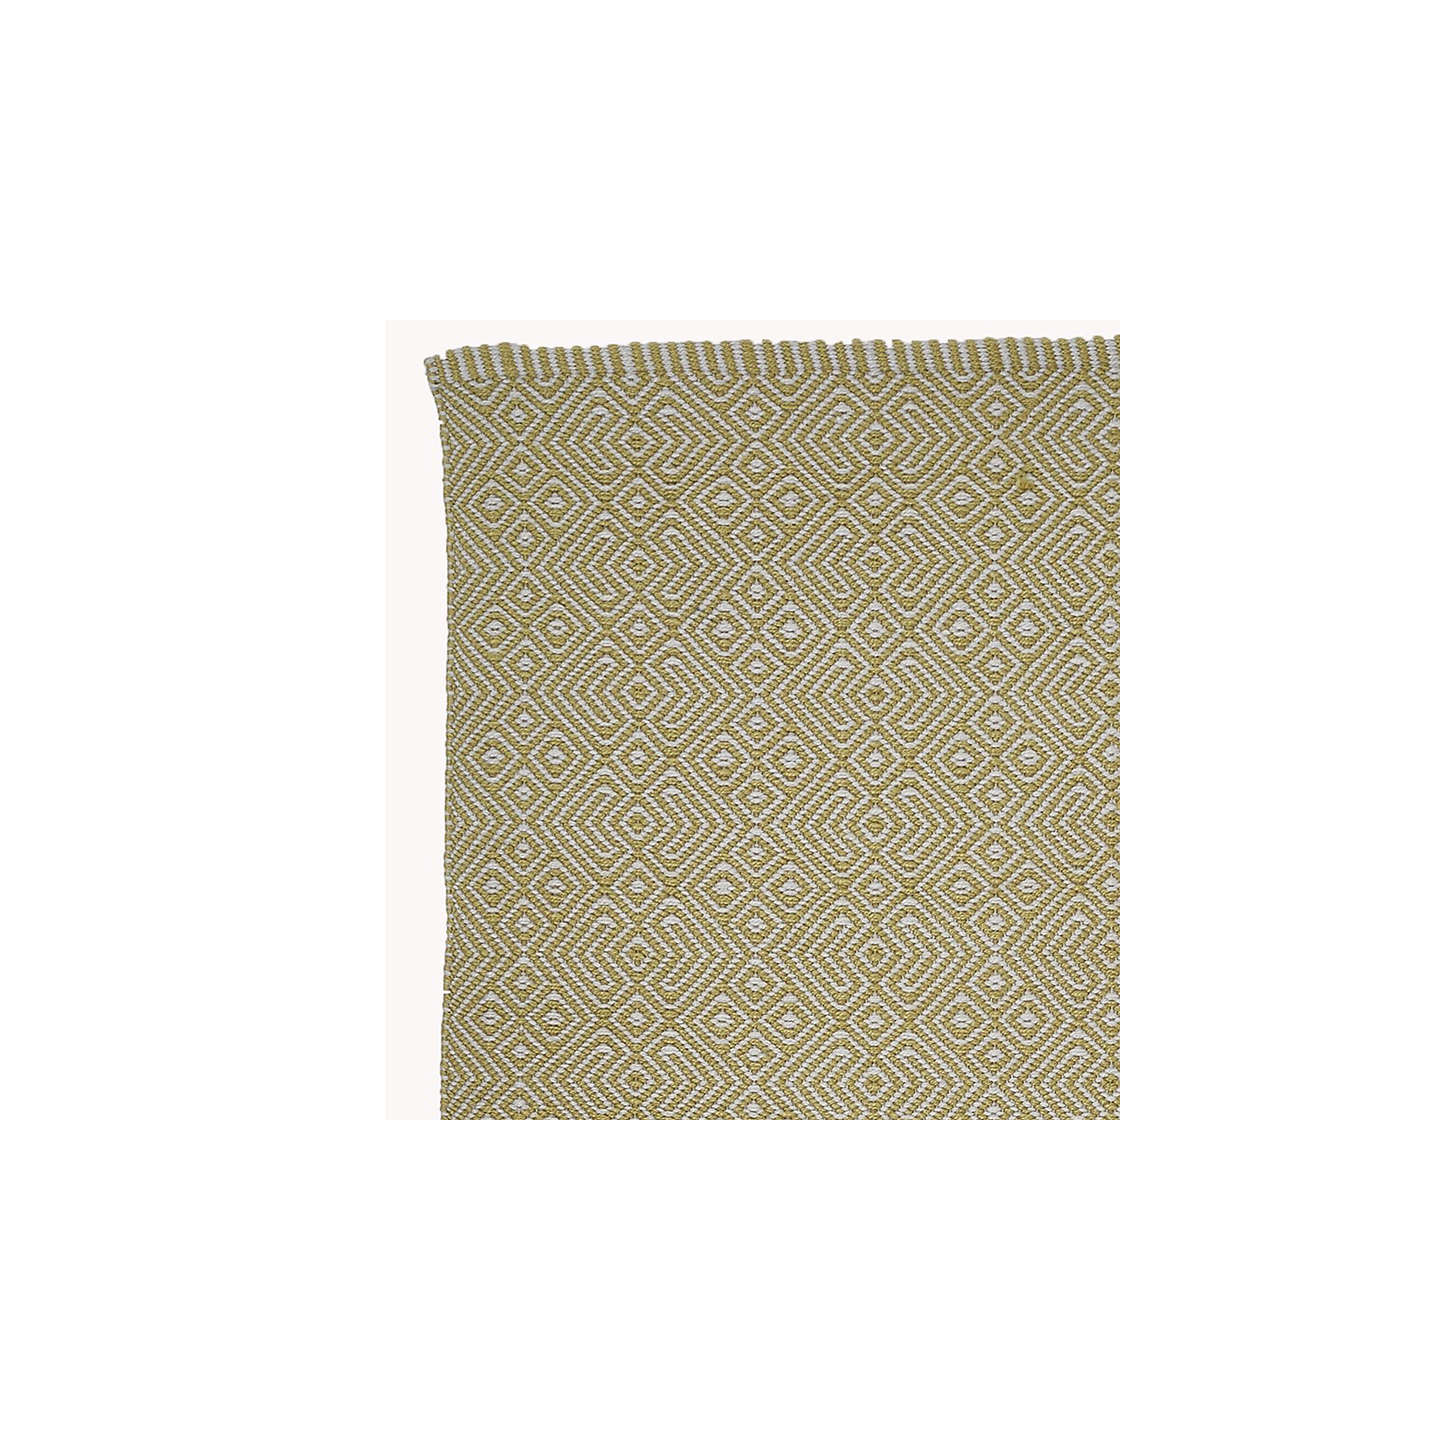 Green Rug John Lewis: Weaver Green Provence Collection Washable Outdoor Rug At